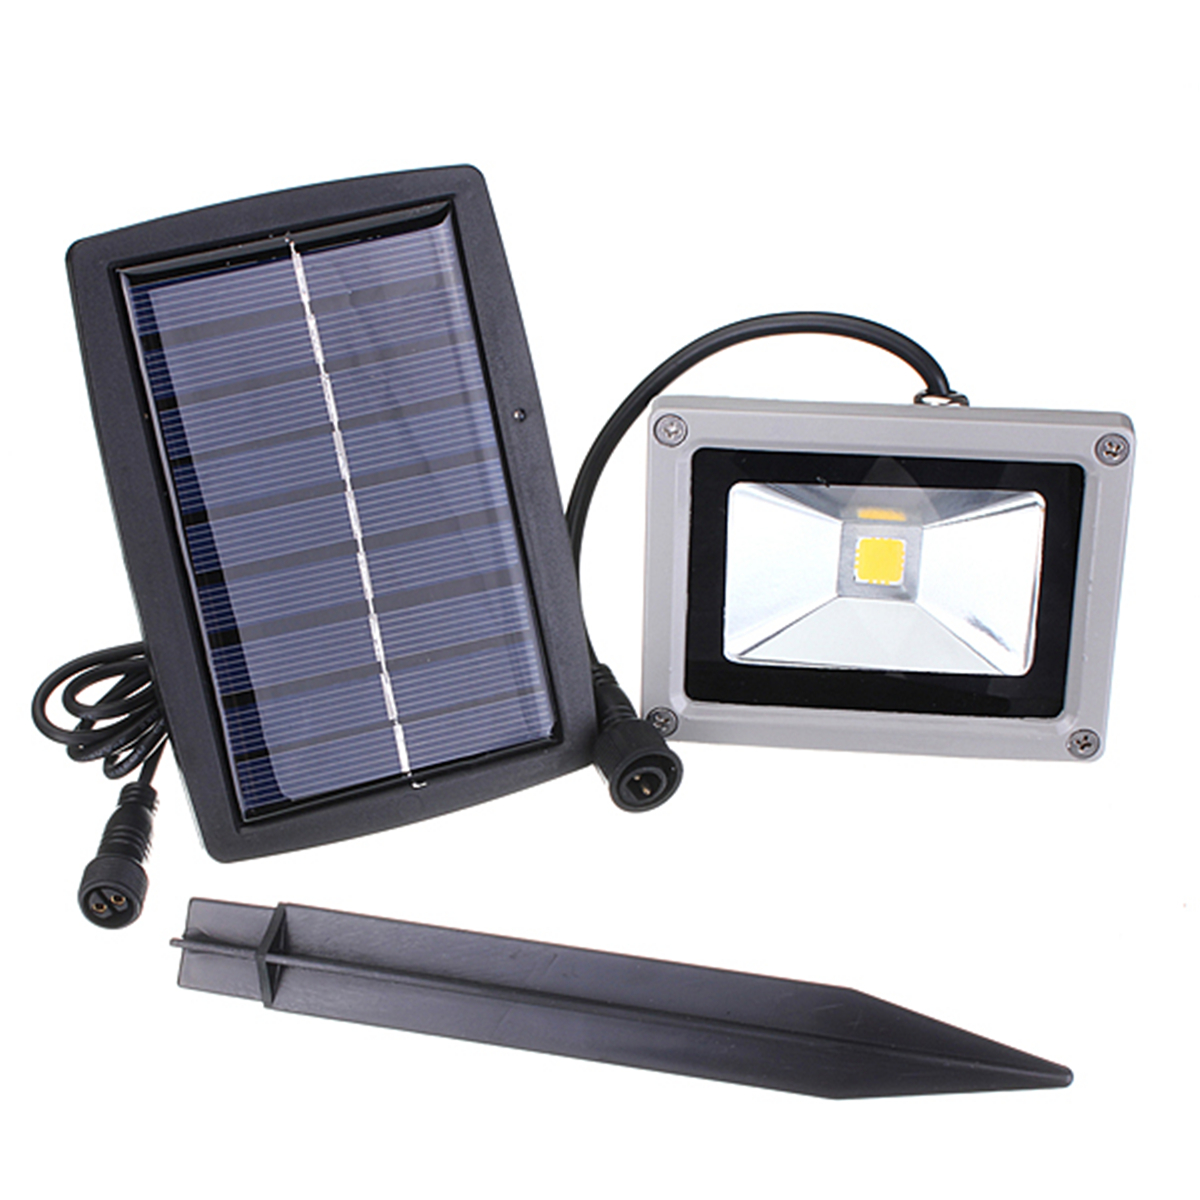 Mising Solar Flood Light 10W Solar Light LED Flood Light Night Light Garden Spotlight Waterproof Outdoor LampMising Solar Flood Light 10W Solar Light LED Flood Light Night Light Garden Spotlight Waterproof Outdoor Lamp